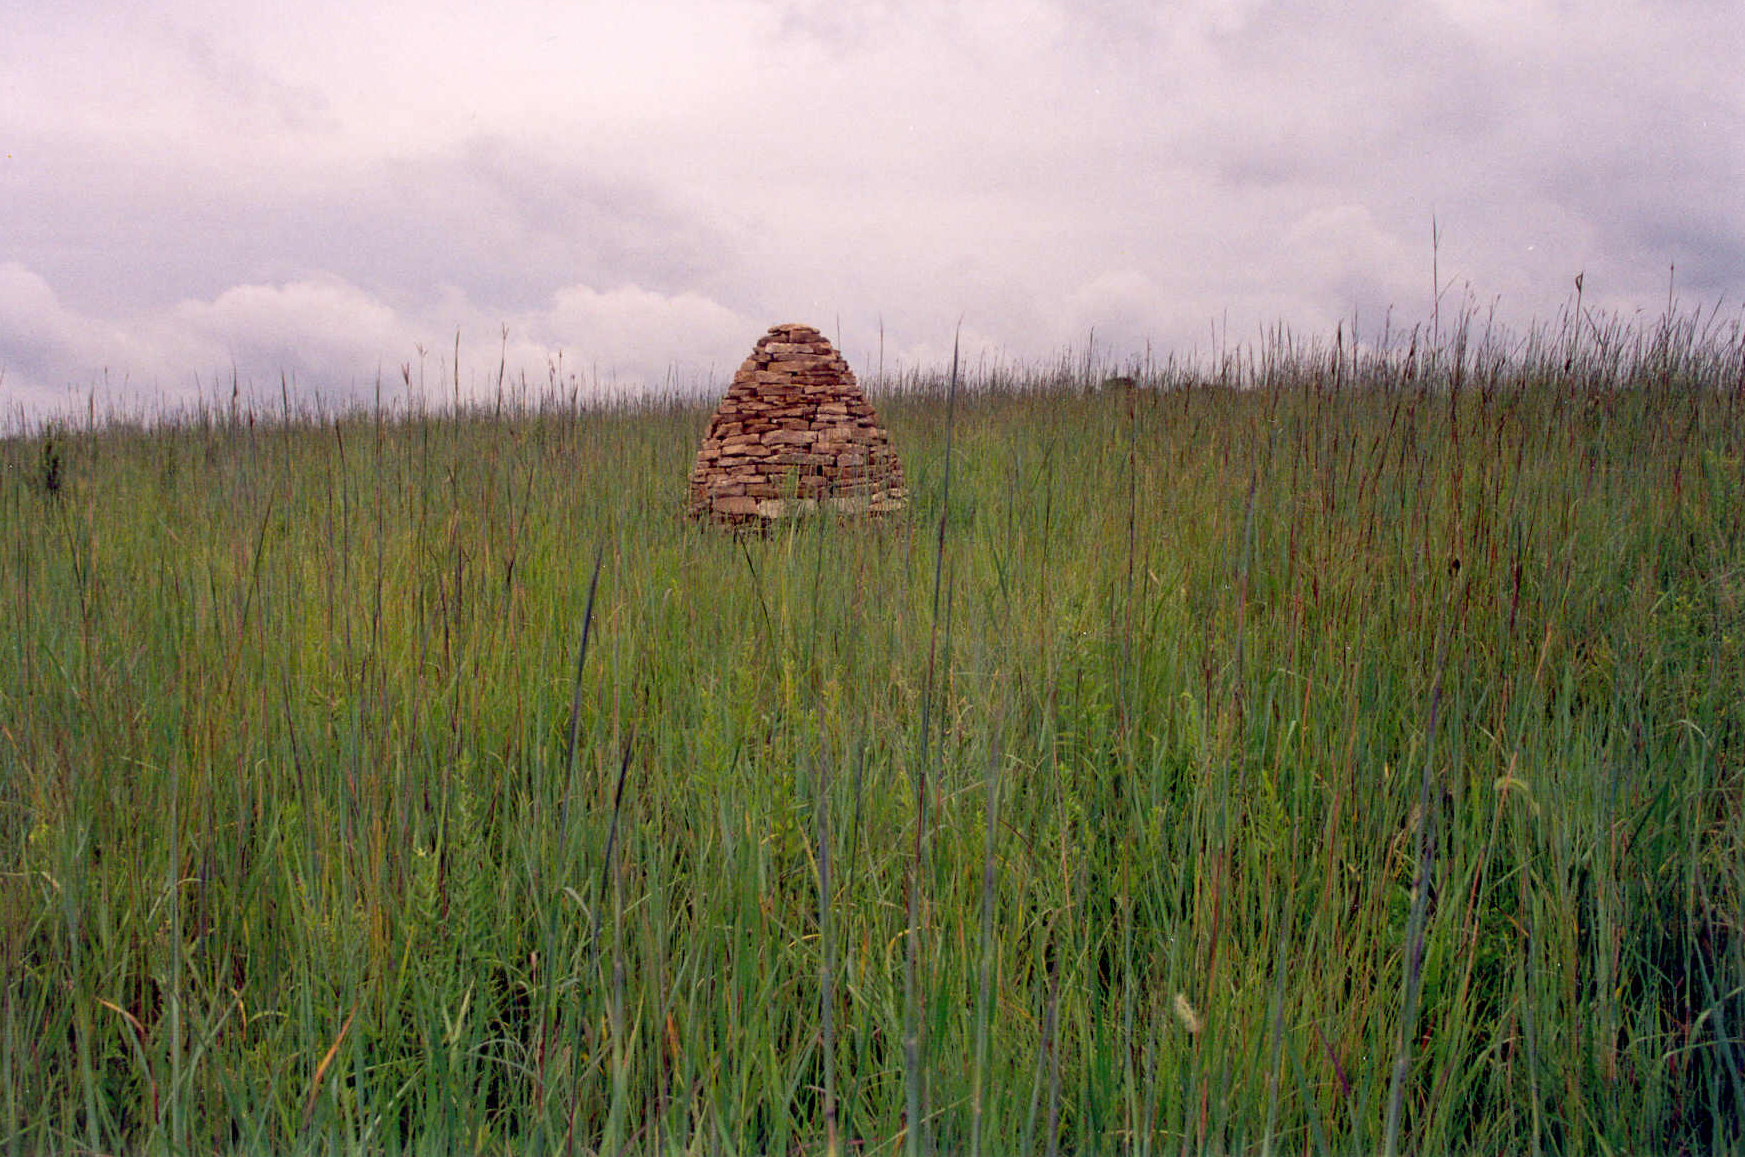 Cairn installation, by Andy Goldsworthy, at the [Conard Environmental Research Area](https://www.grinnell.edu/academics/majors-concentrations/biology/cera) (CERA). Photograph by Justin Hayworth